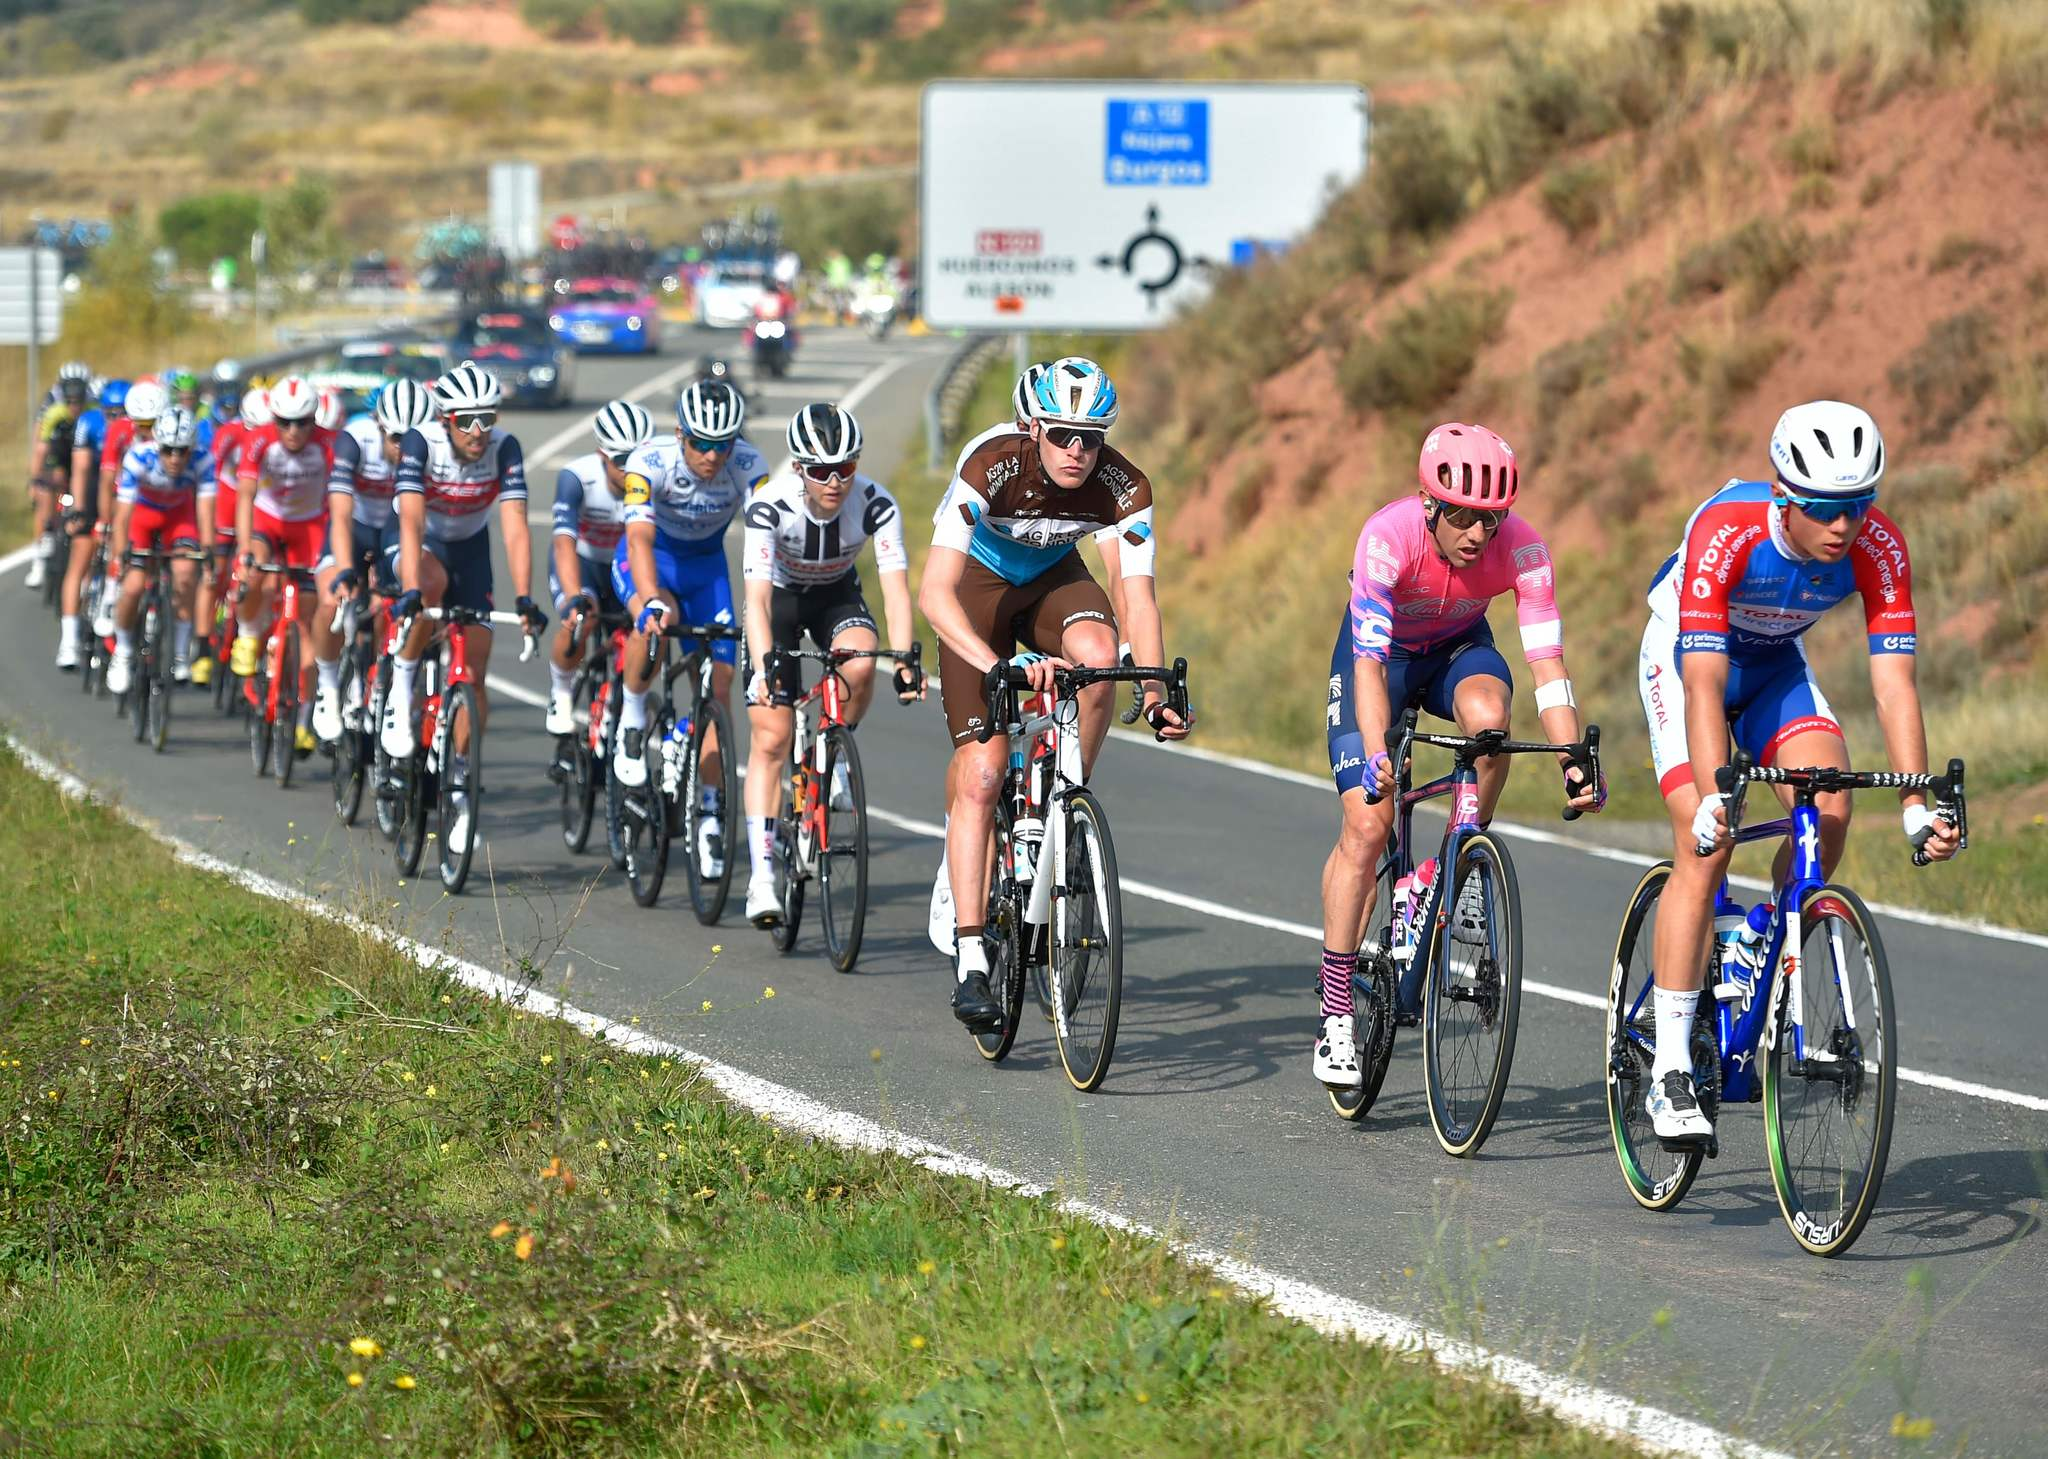 The pack rides in Ventosa during the 8th stage of the 2020 La lt;HIT gt;Vuelta lt;/HIT gt; cycling tour of Spain, a 164 km race from Logrono to Alto de Moncalvillo, on October 28, 2020. (Photo by ANDER GILLENEA / AFP)